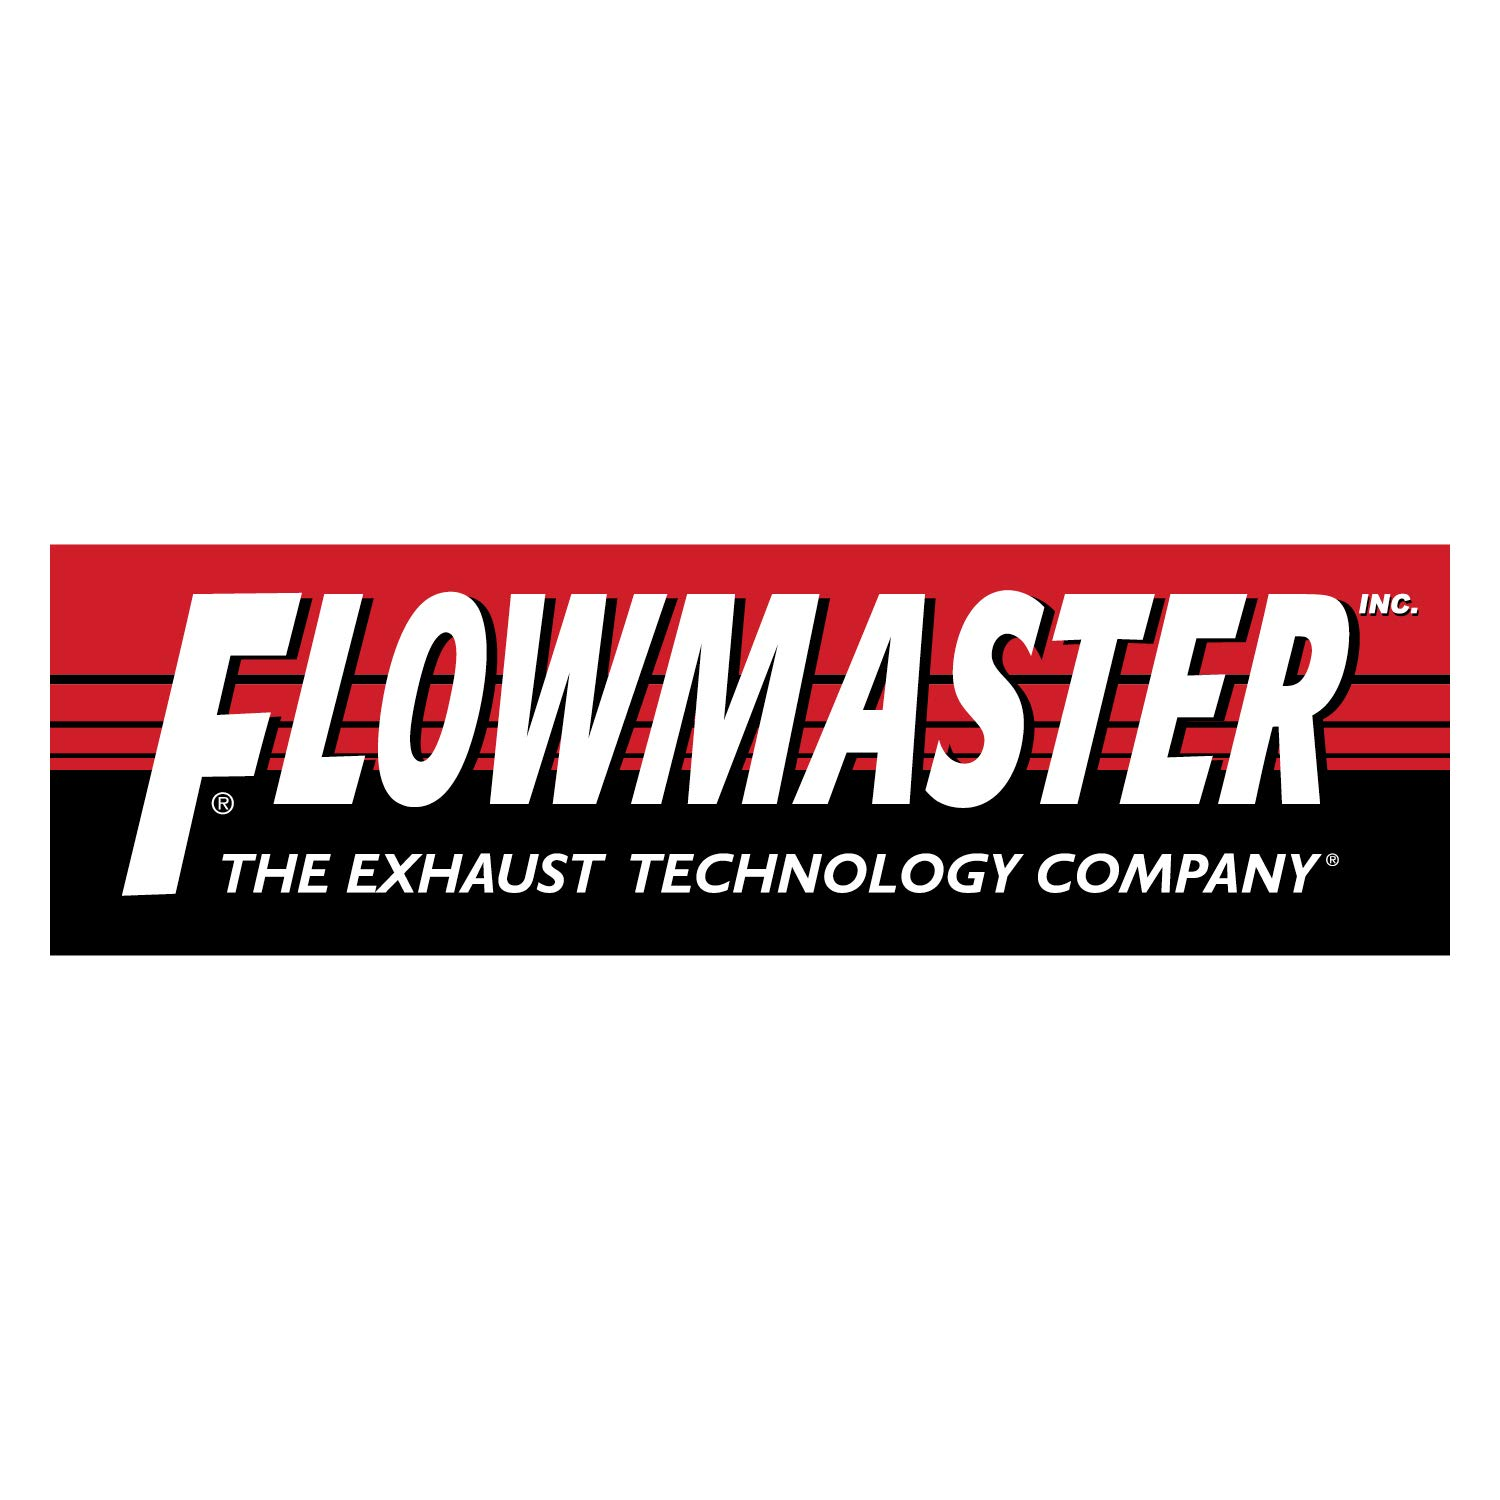 Flowmaster SF300 Slip Connector - 3.00 in. ID x 10.00 in. Long by Flowmaster (Image #2)